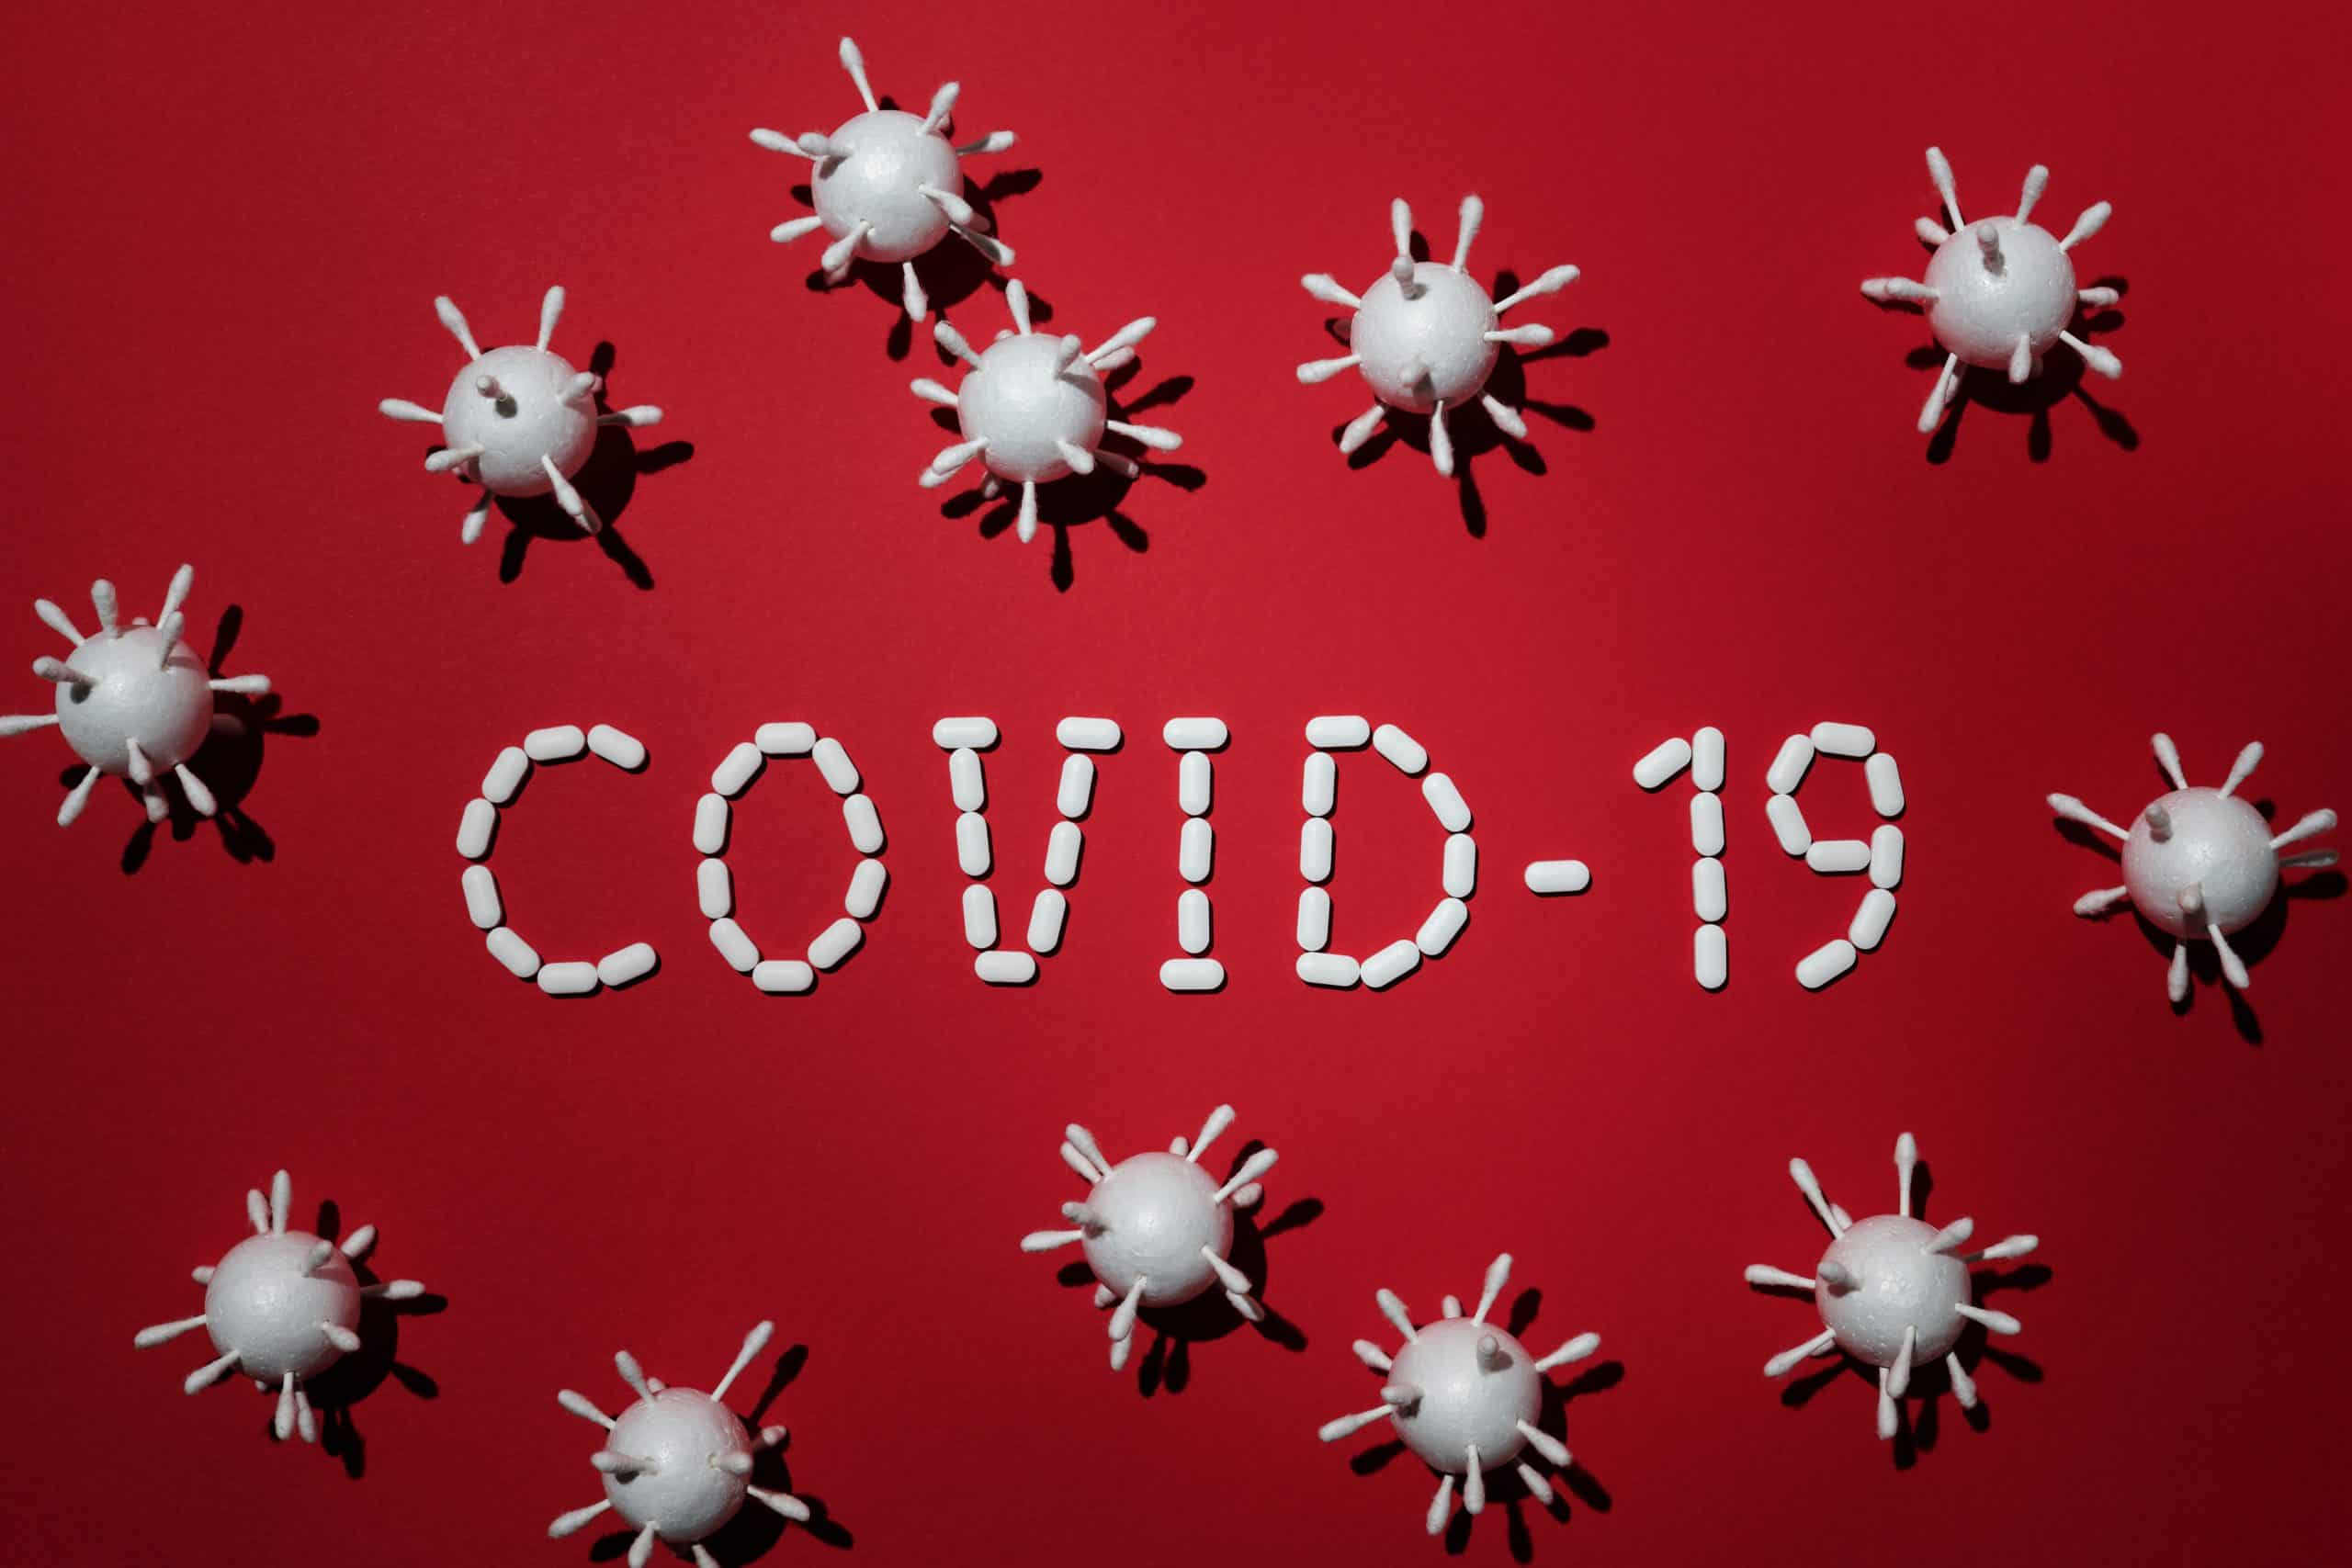 About COVID-19: How Does Coronavirus Spread?